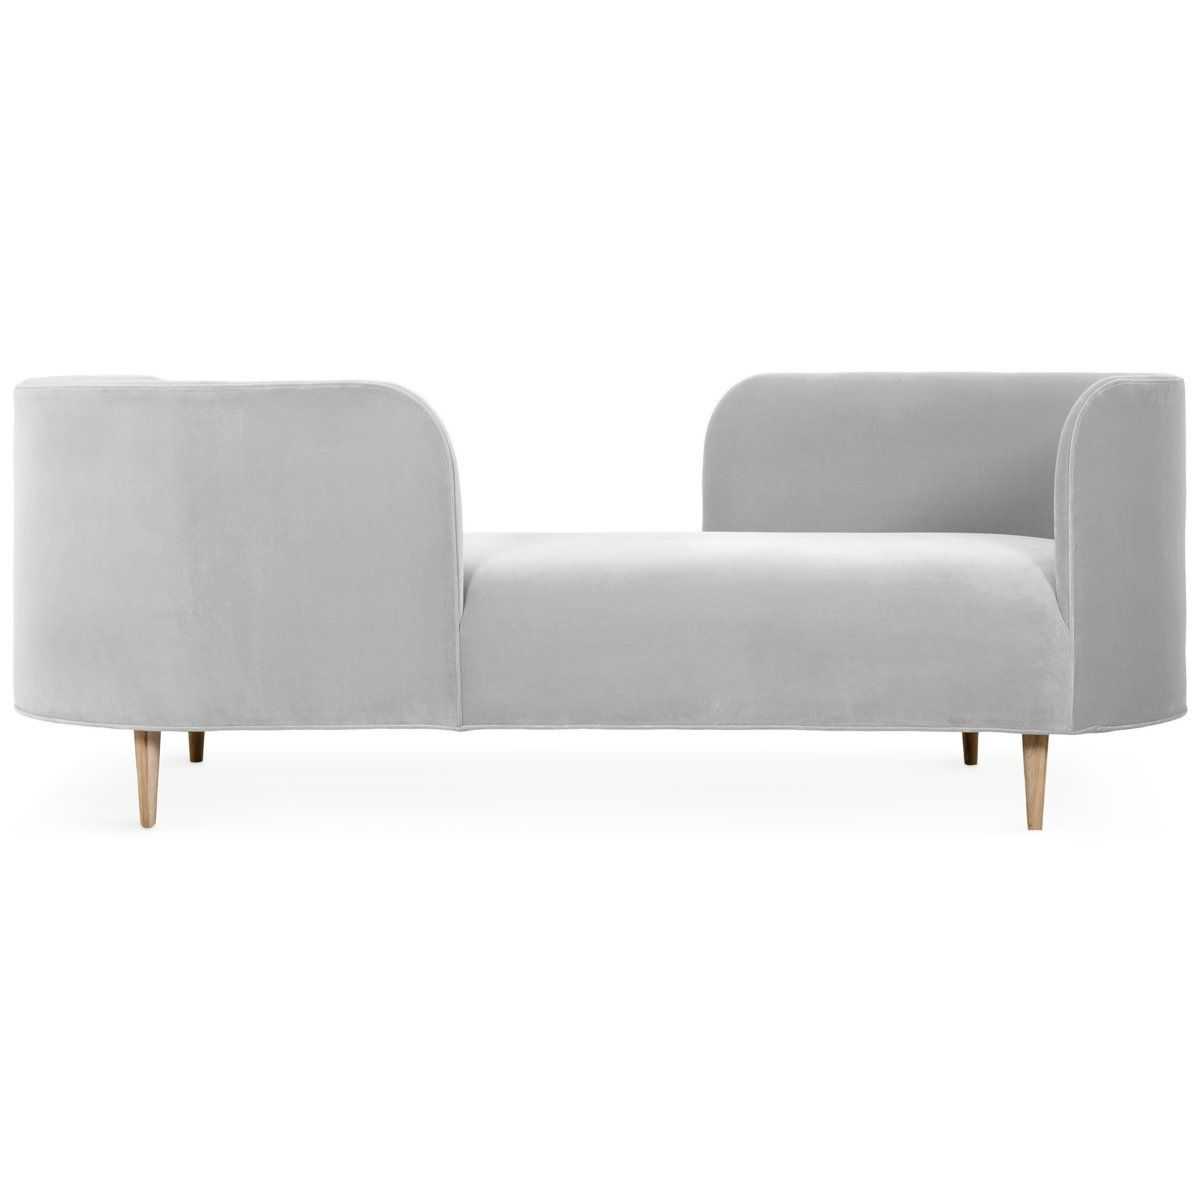 Oslo Chaise In Velvet In 2020 Sleeper Sofa Contemporary Sleeper Sofas Chaise